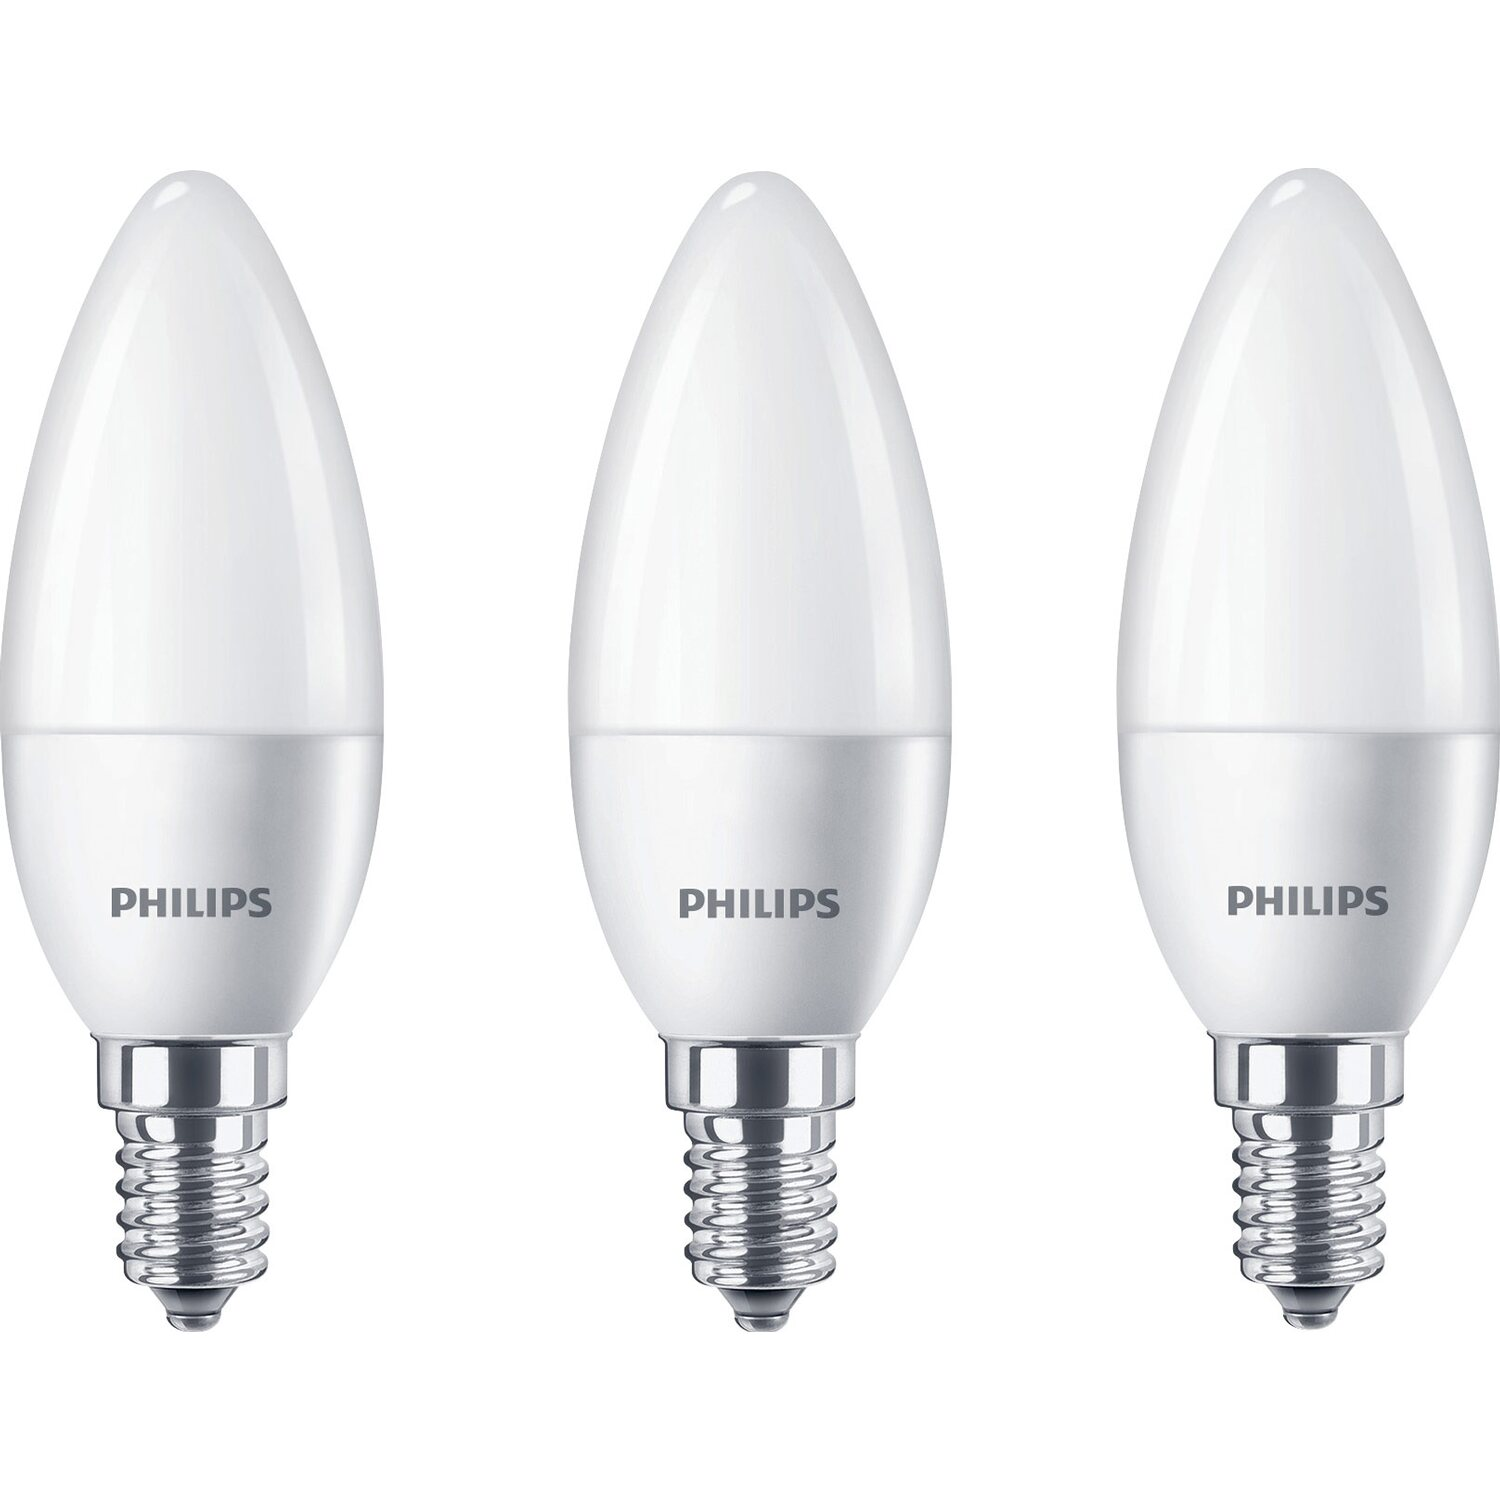 Philips LED-Lampe Kerzenform E14 / 5,5 W (470 lm) Warmweiß 3er-Pack ...